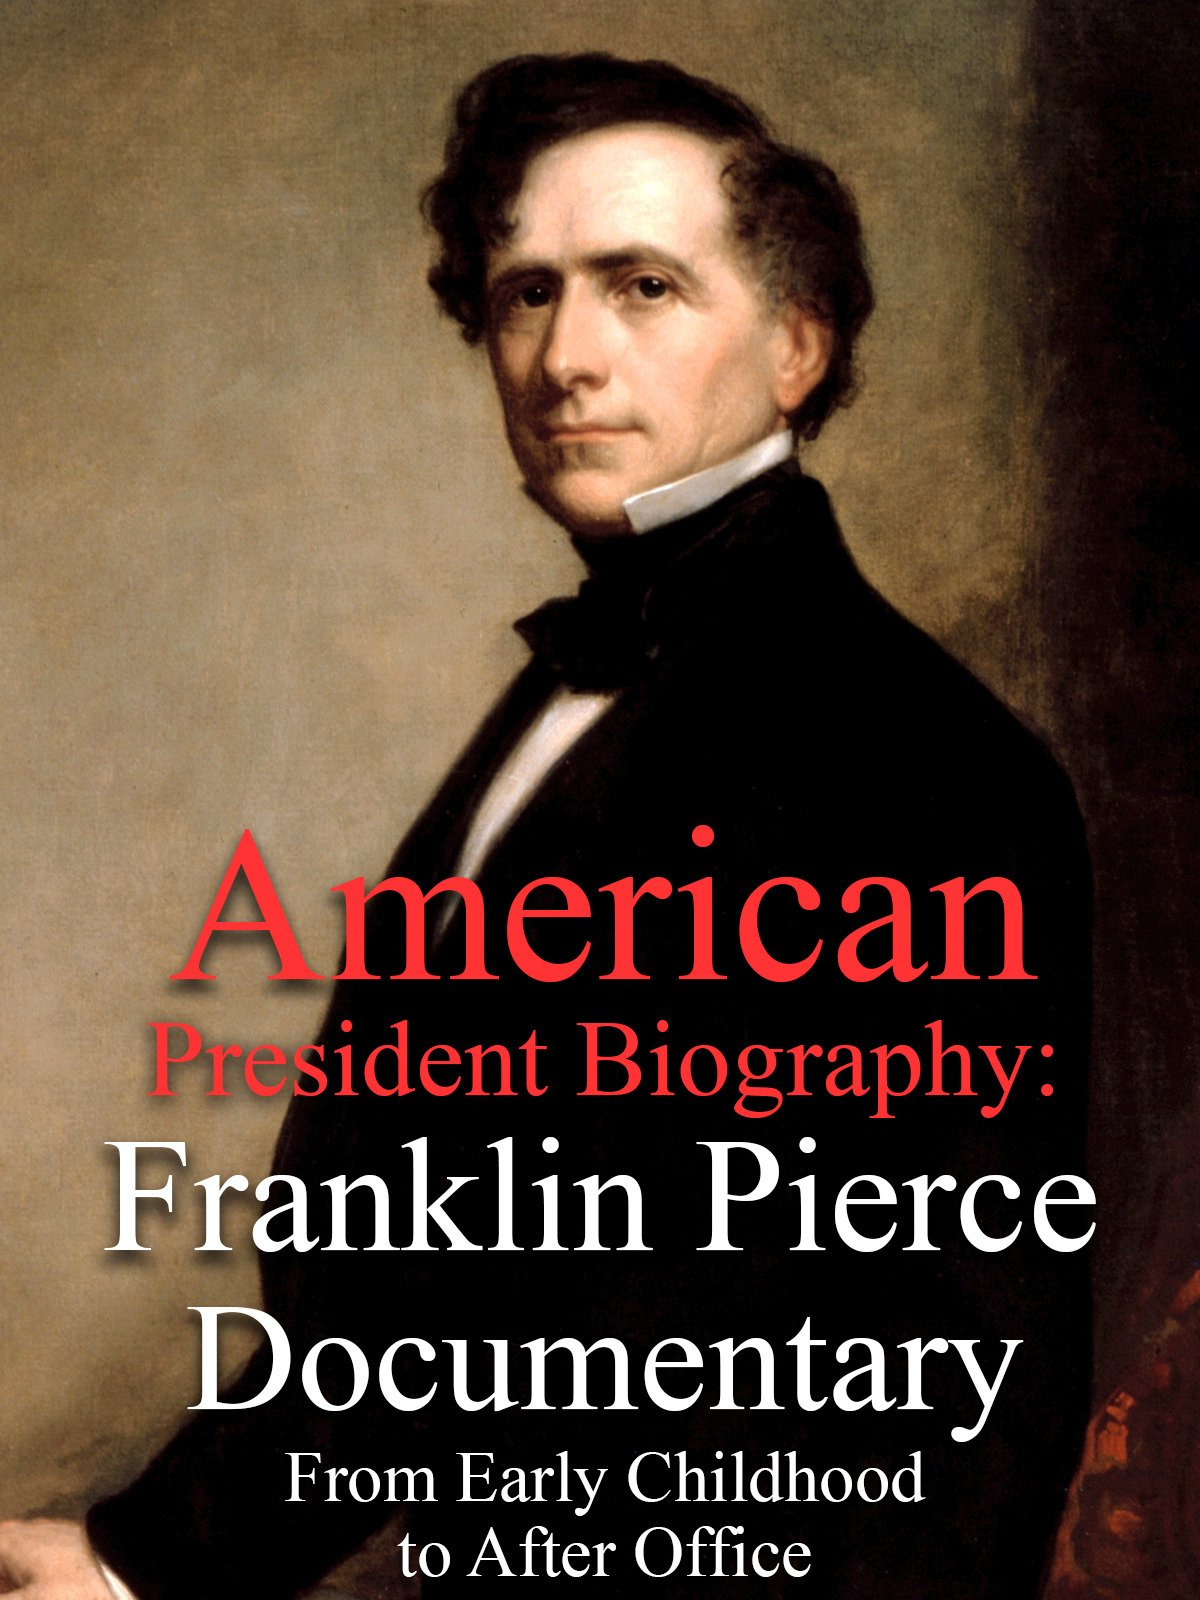 American President Biography: Franklin Pierce Documentary From Early Childhood to After Office